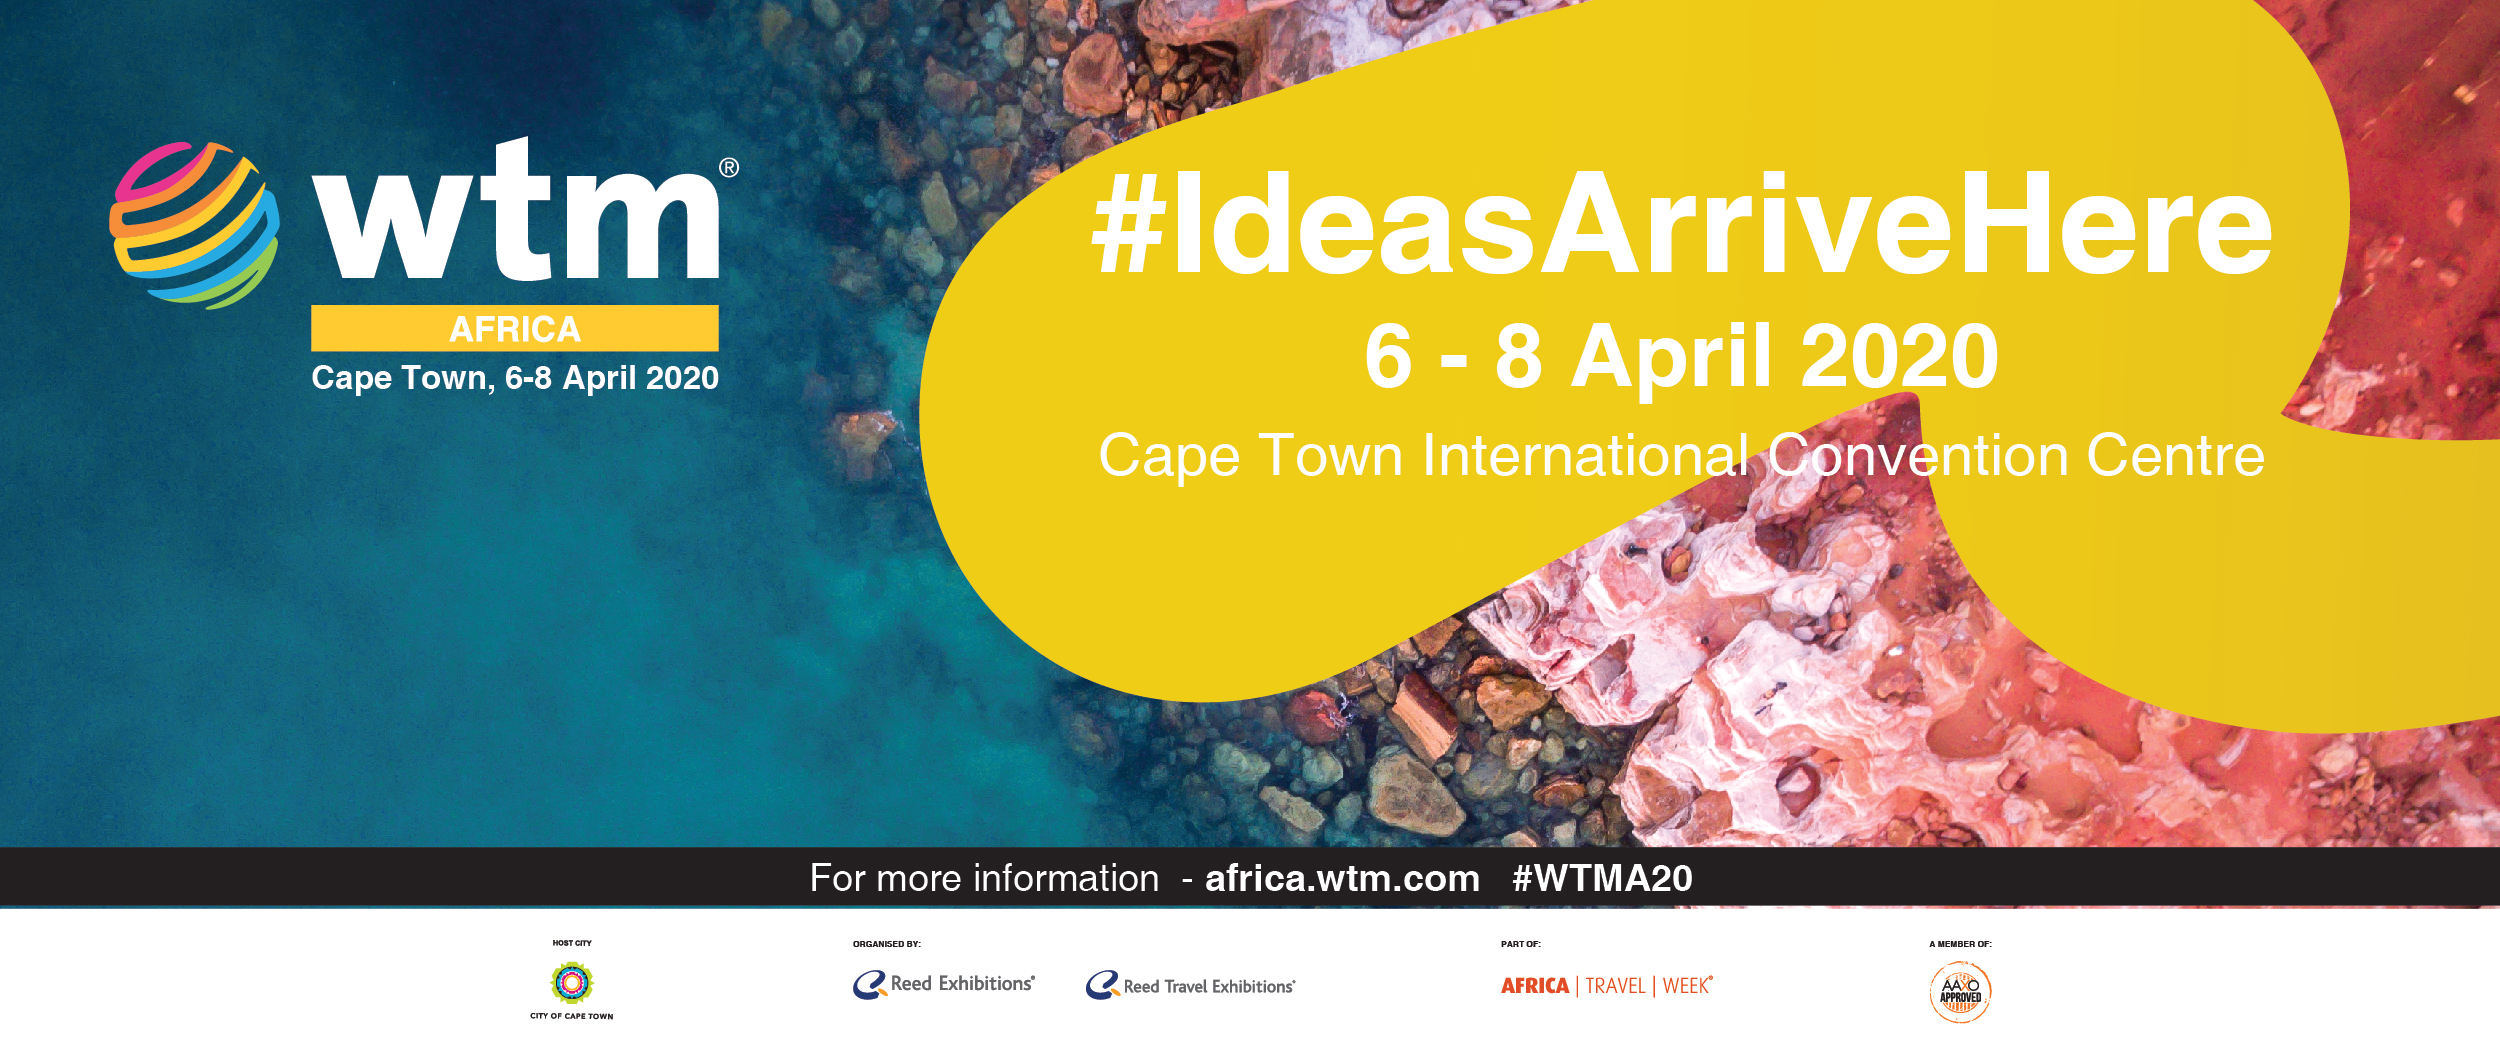 Make a date with Africa's most important tourism trade show - see you in Cape Town next April!